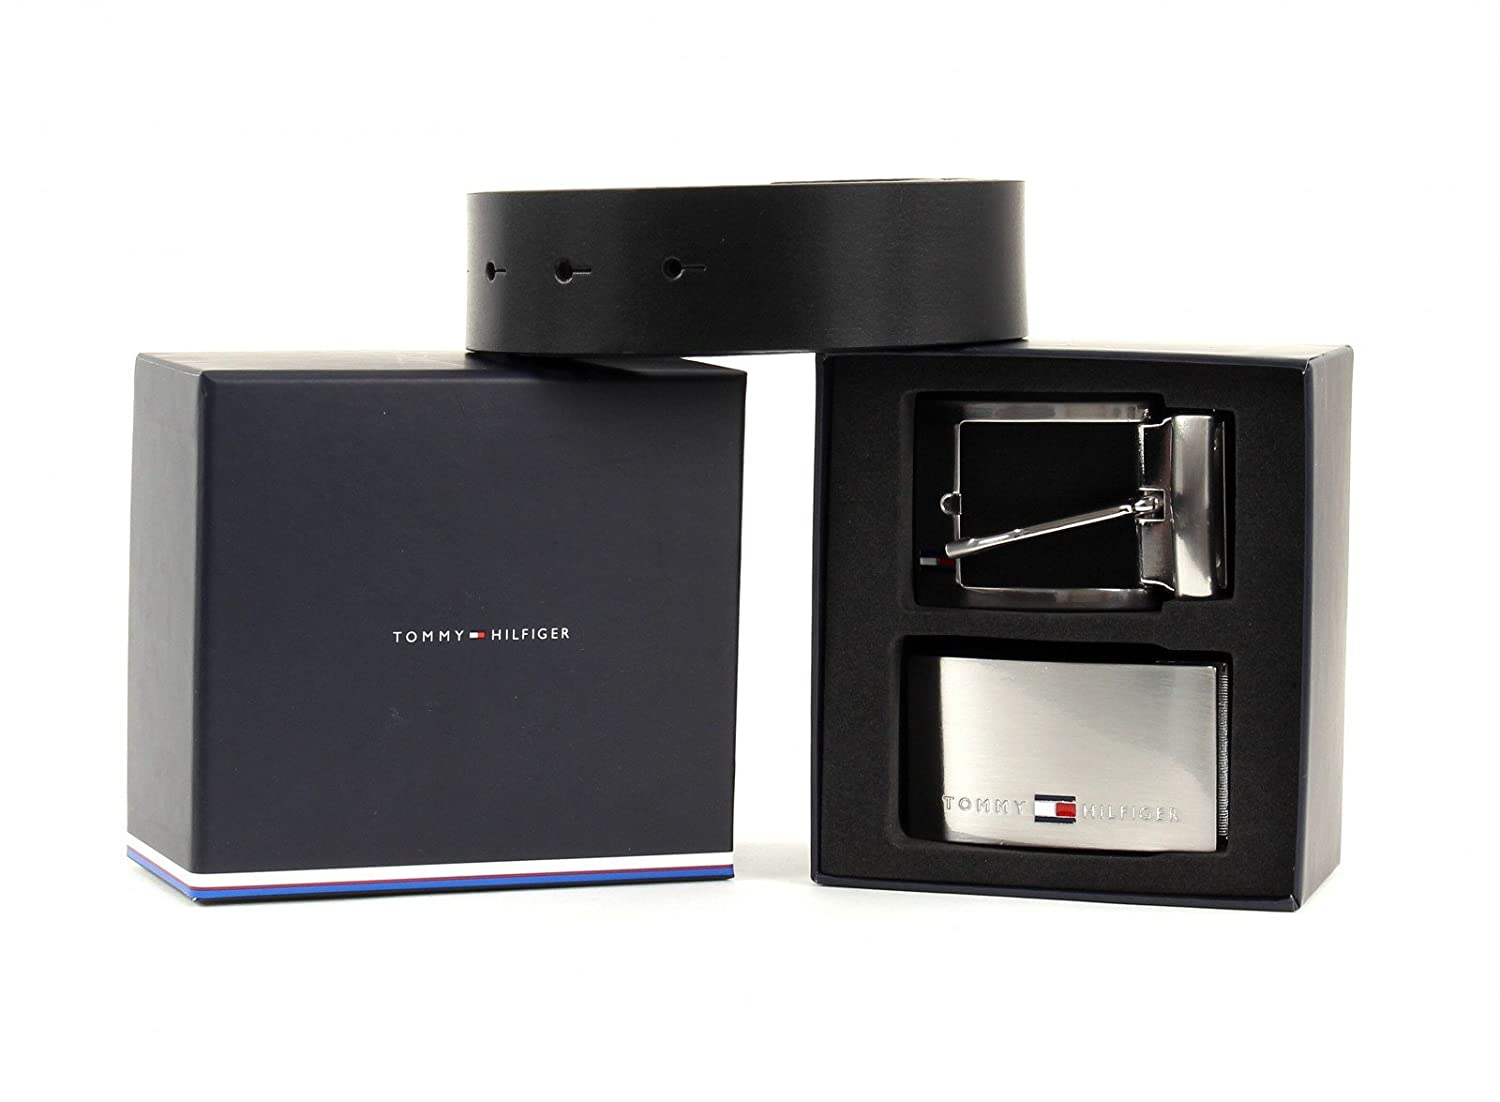 TOMMY HILFIGER Double Buckle Gift Box 3.5 Adjustable Reversible W80 Black Brown   Amazon.co.uk  Clothing af65c5885c